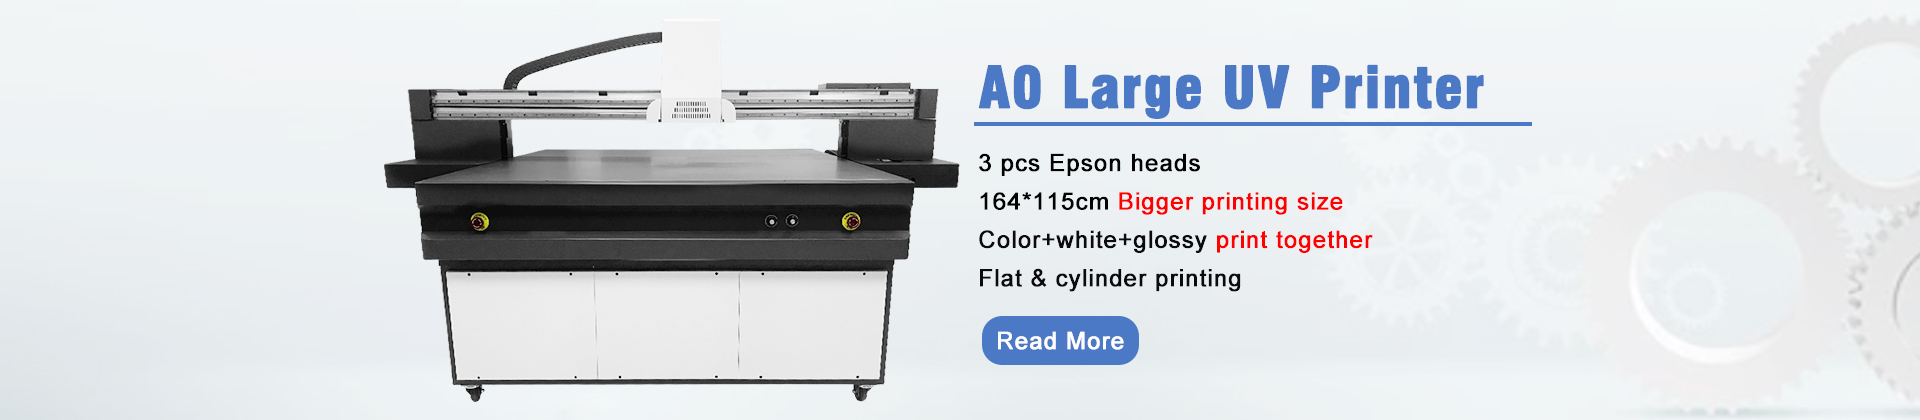 large uv printer